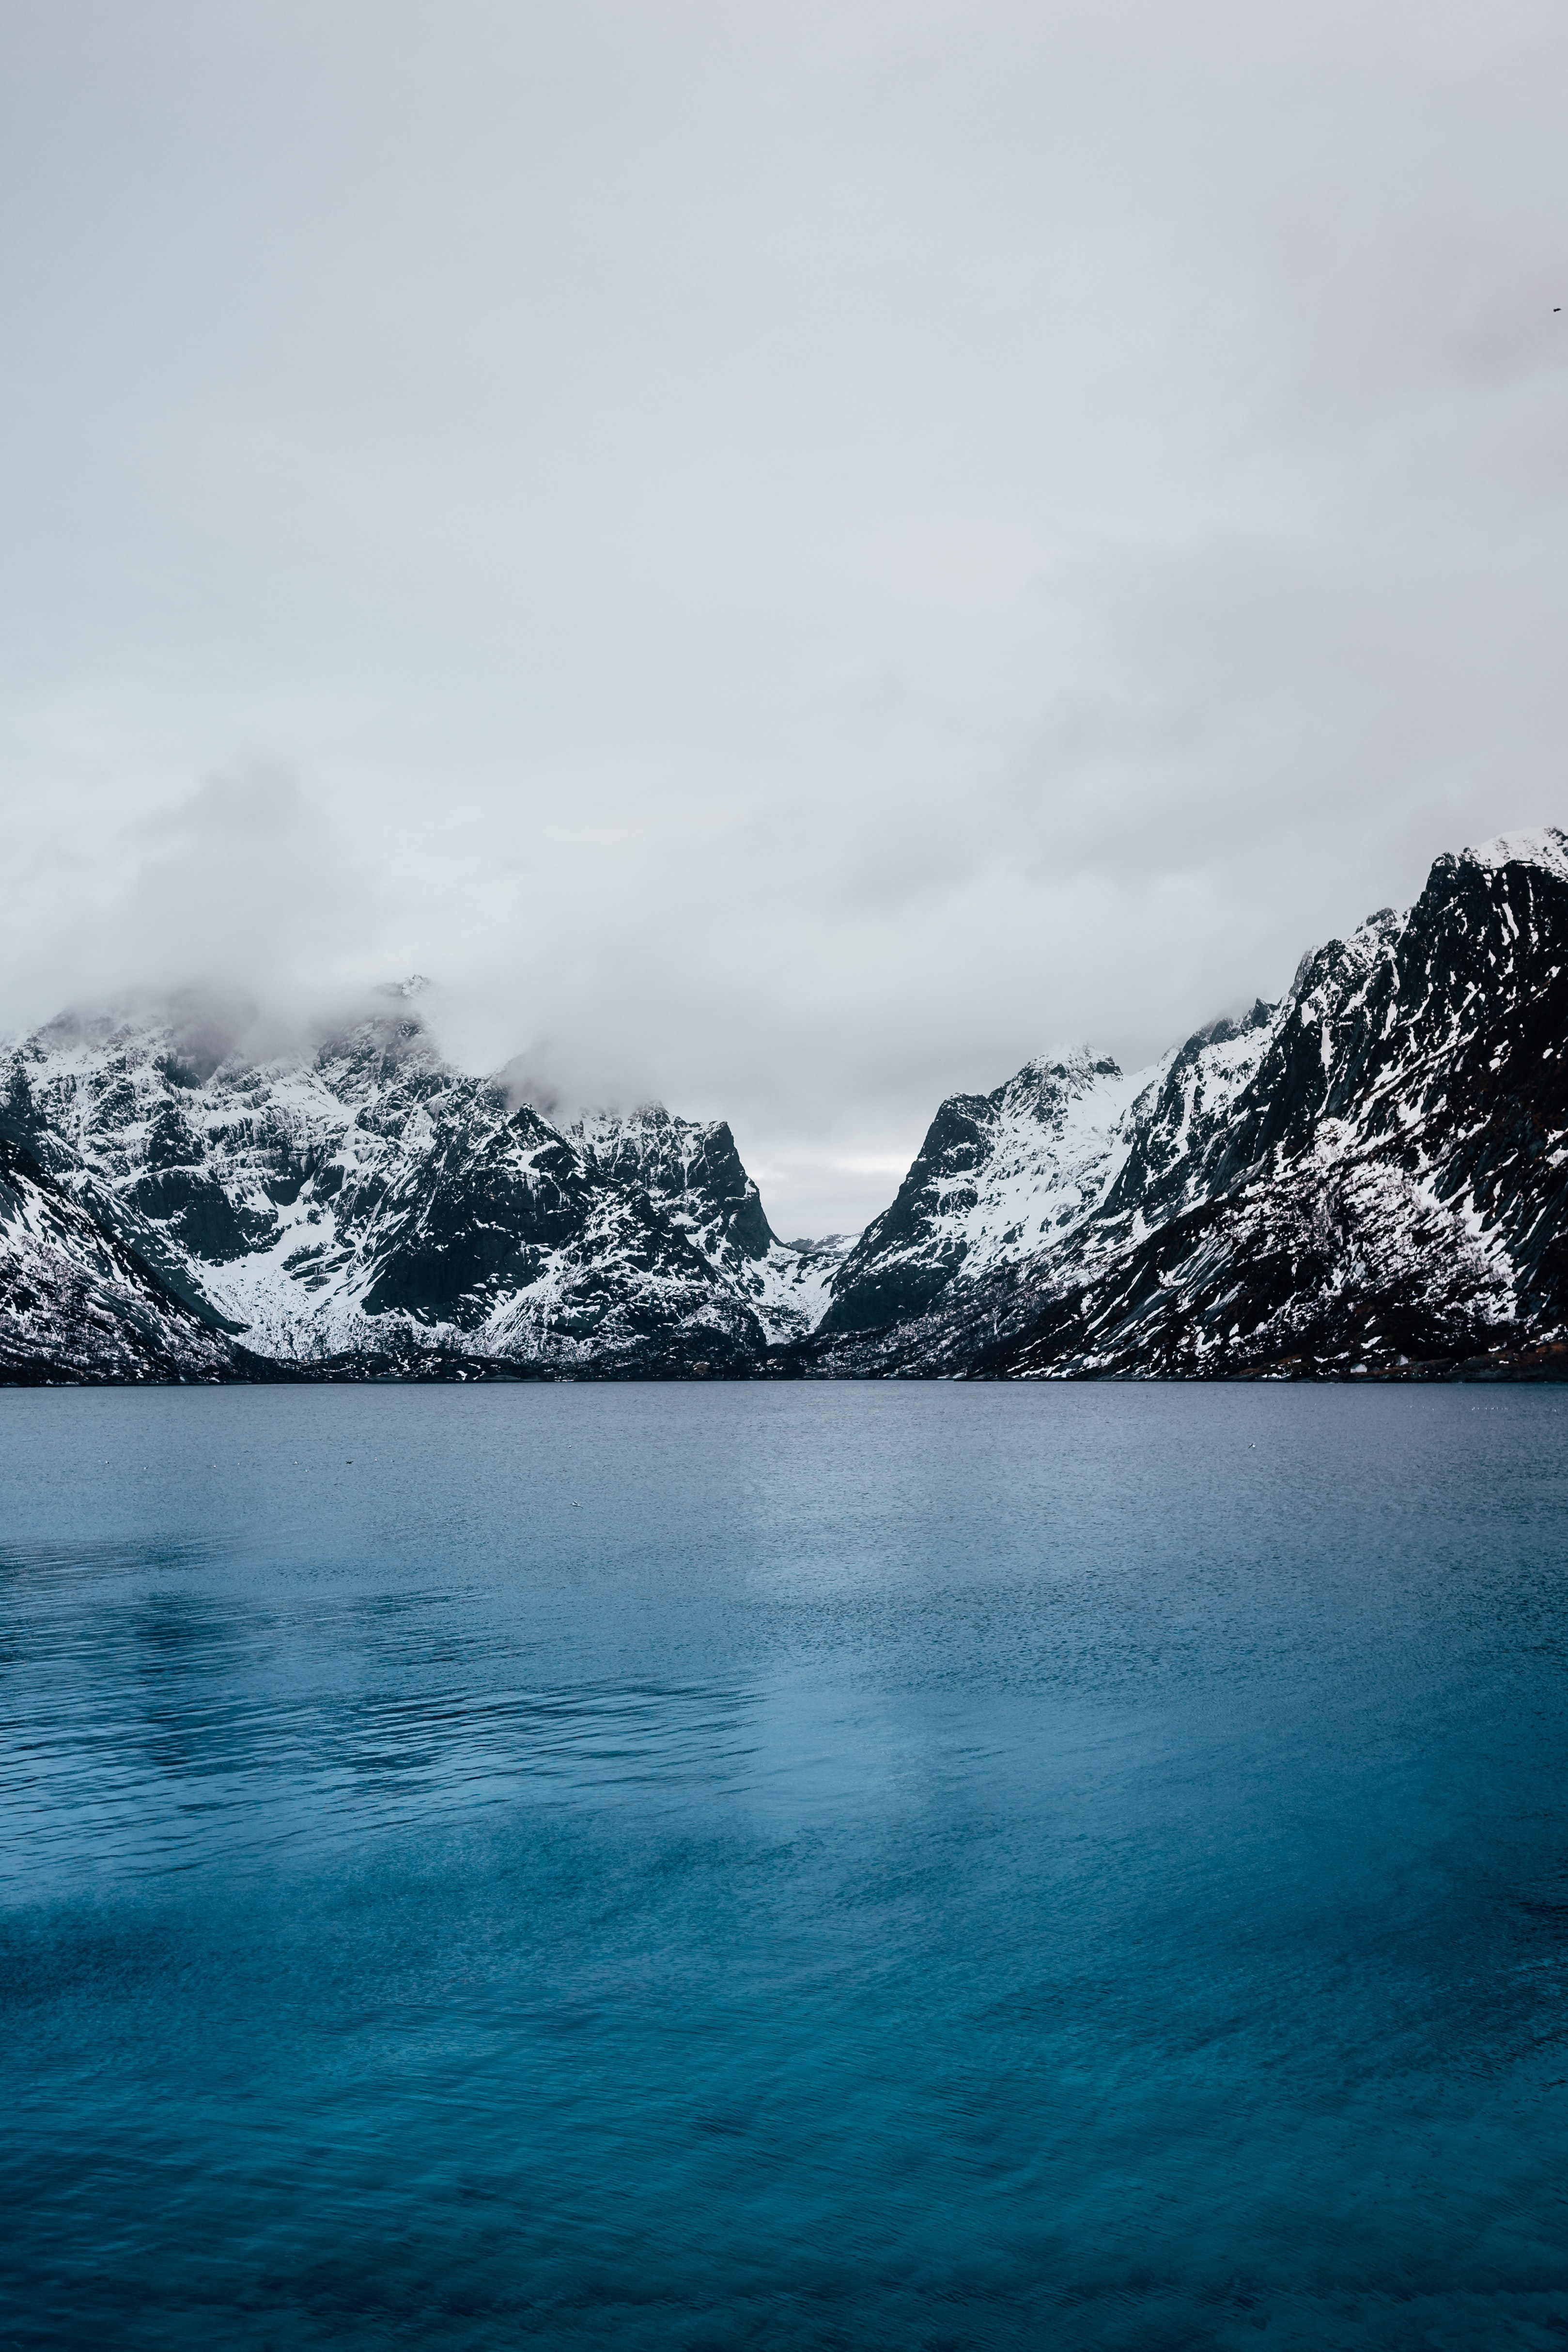 blue calm body of water and snow covered mountain under grey clouds at daytime